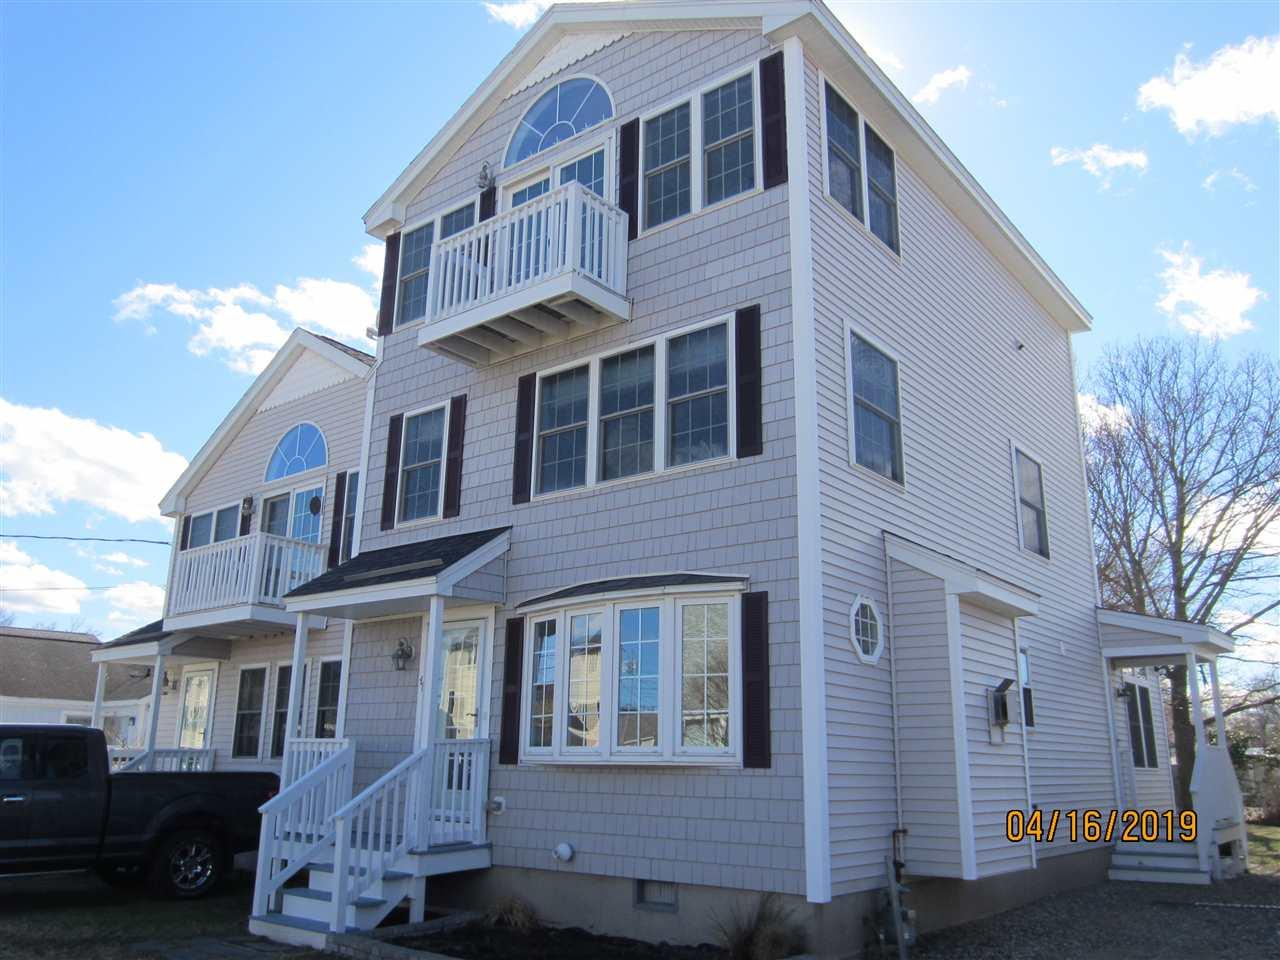 47 Pearl Hampton, NH 03842 - Condo home for sale | RE/MAX